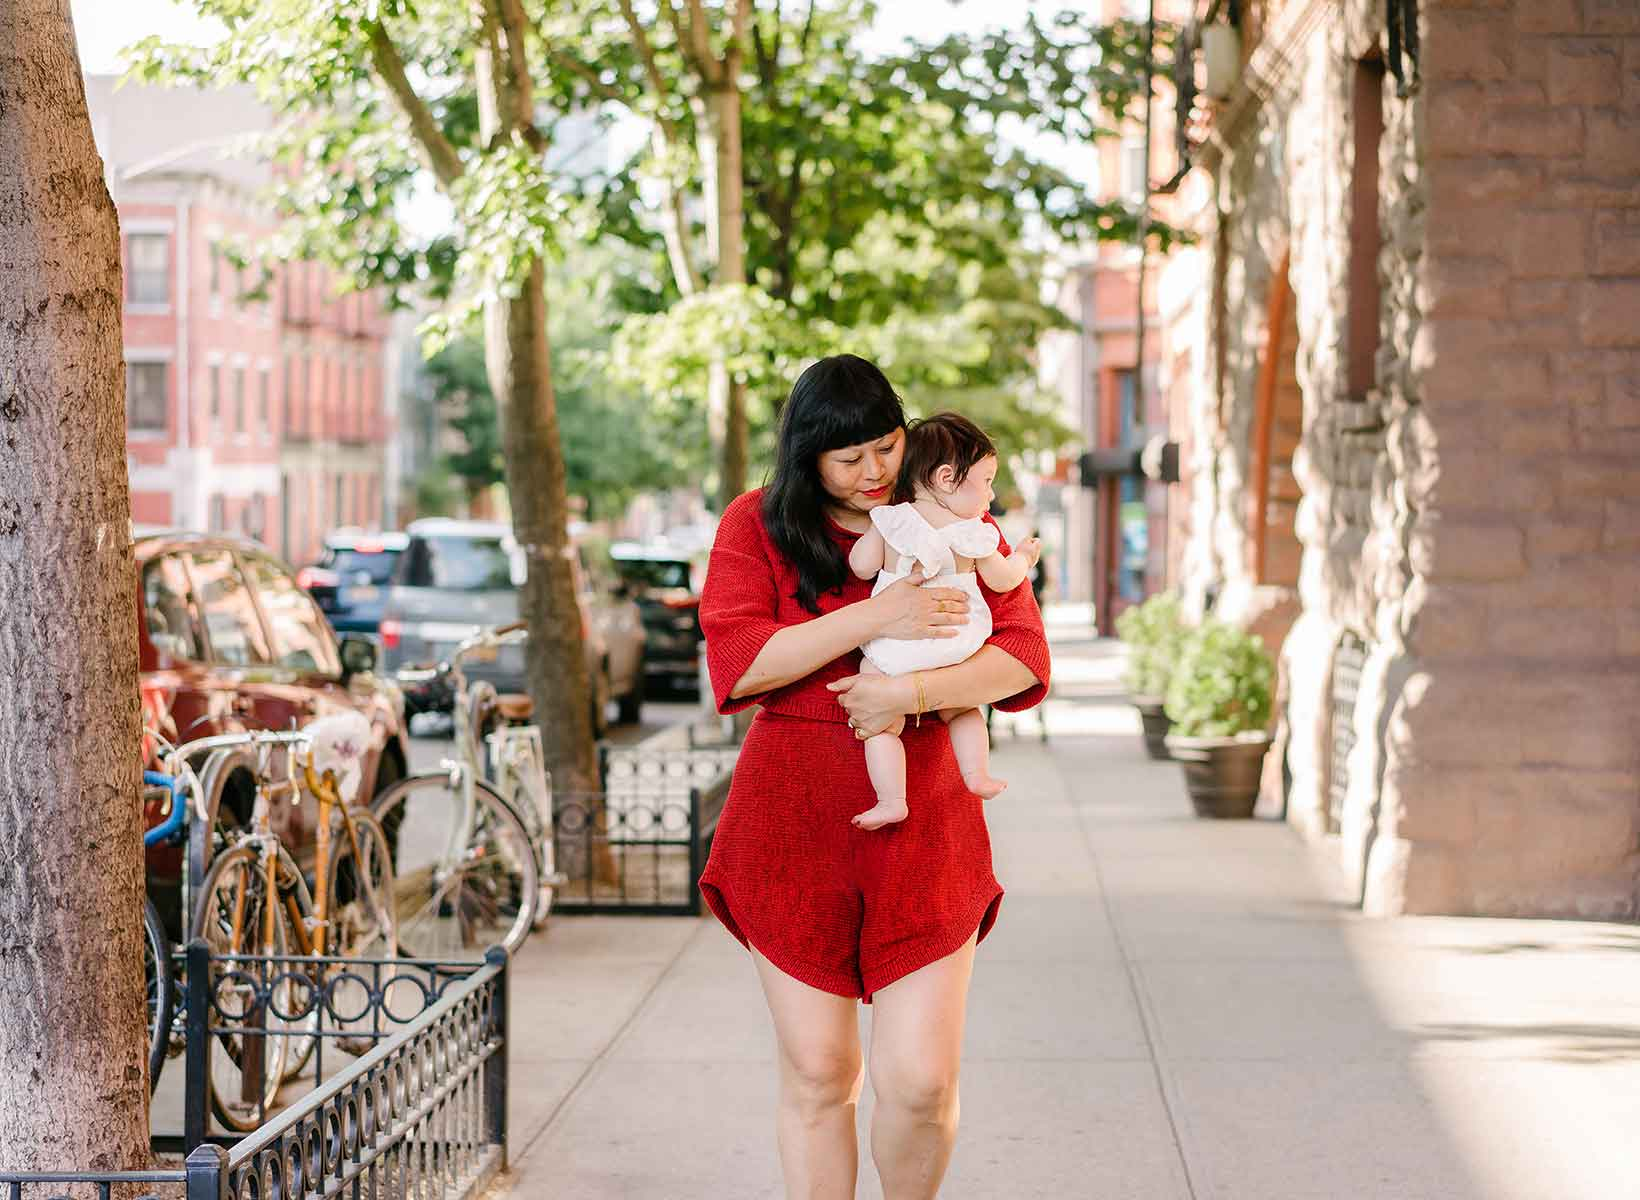 Picture of a woman in a red romper carrying a baby down a city street